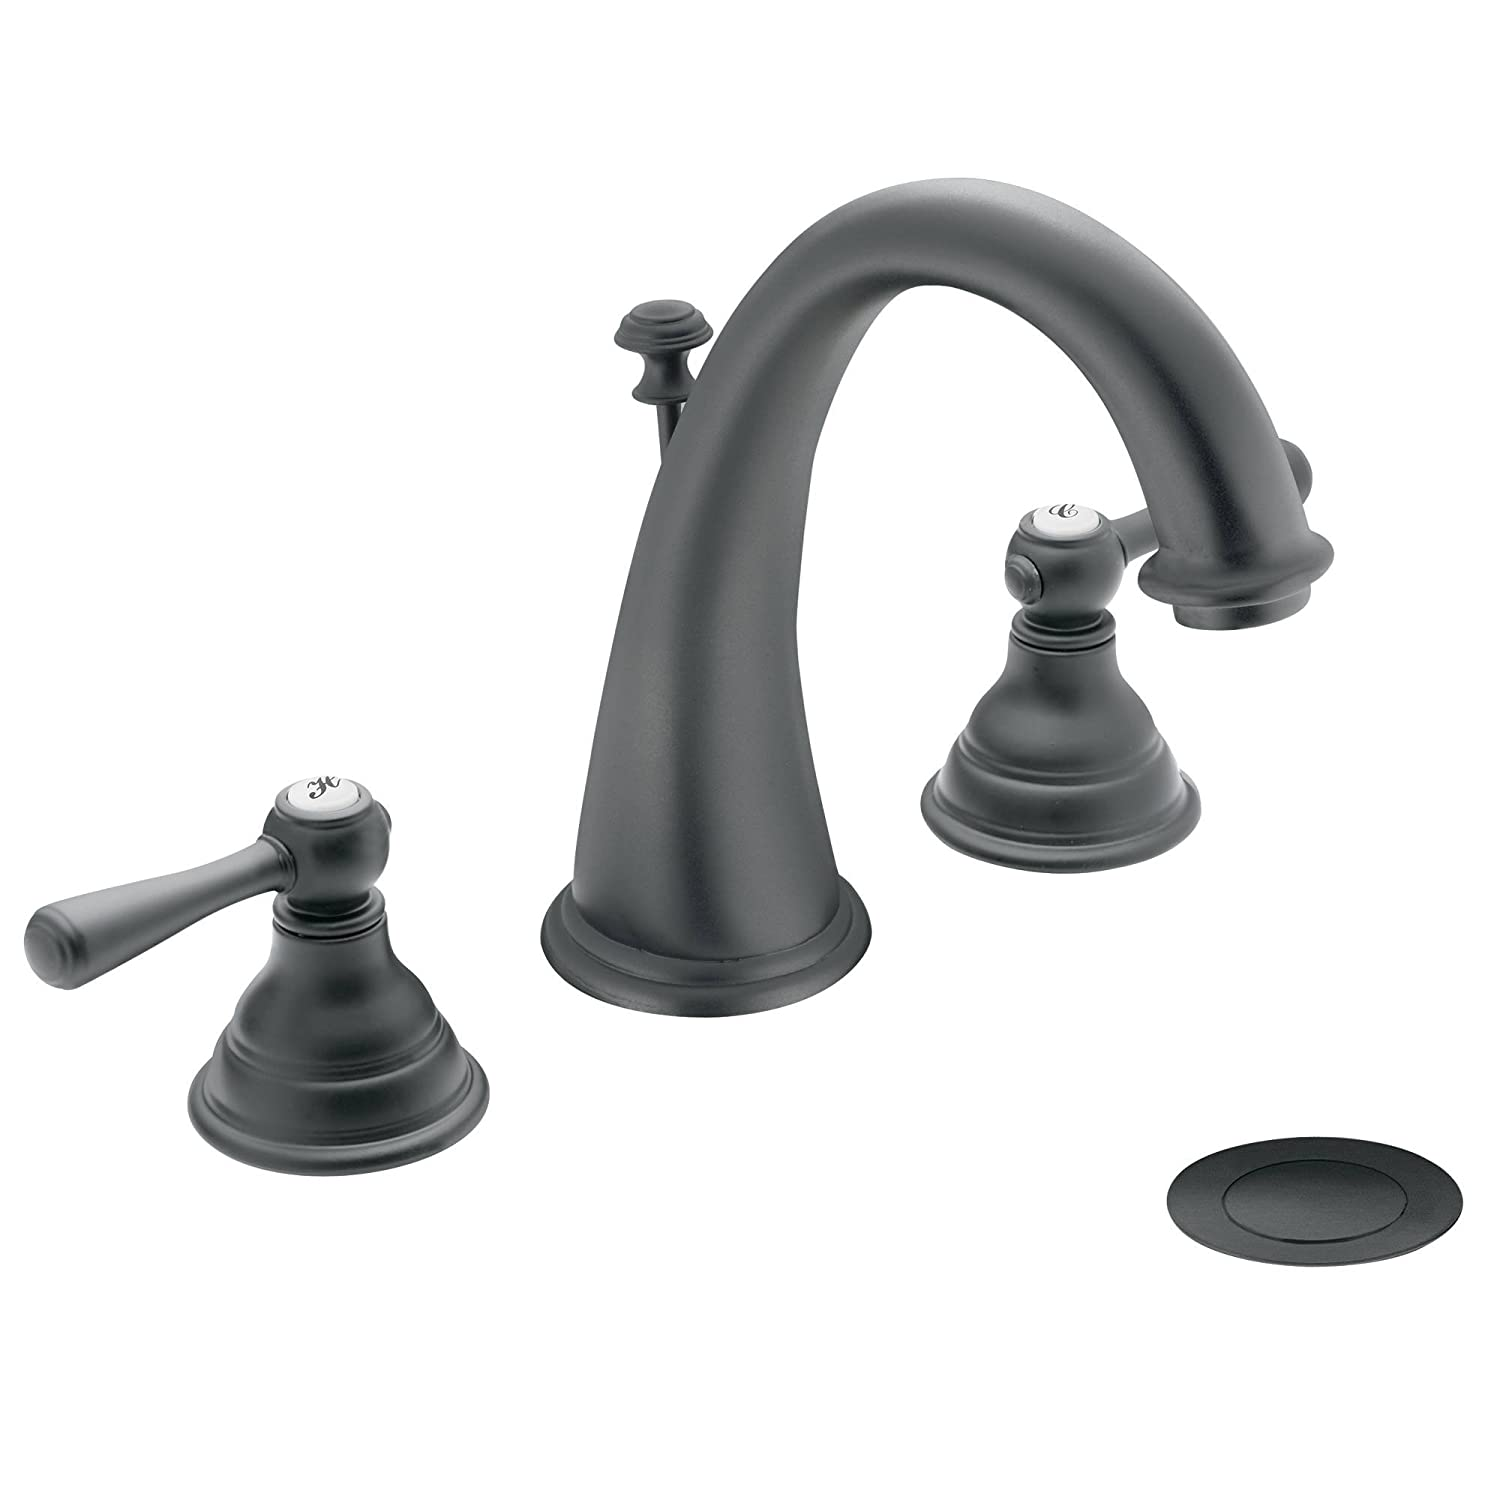 Fresh moen brantford bathroom faucet bathroom interior Amazon bathroom faucets moen